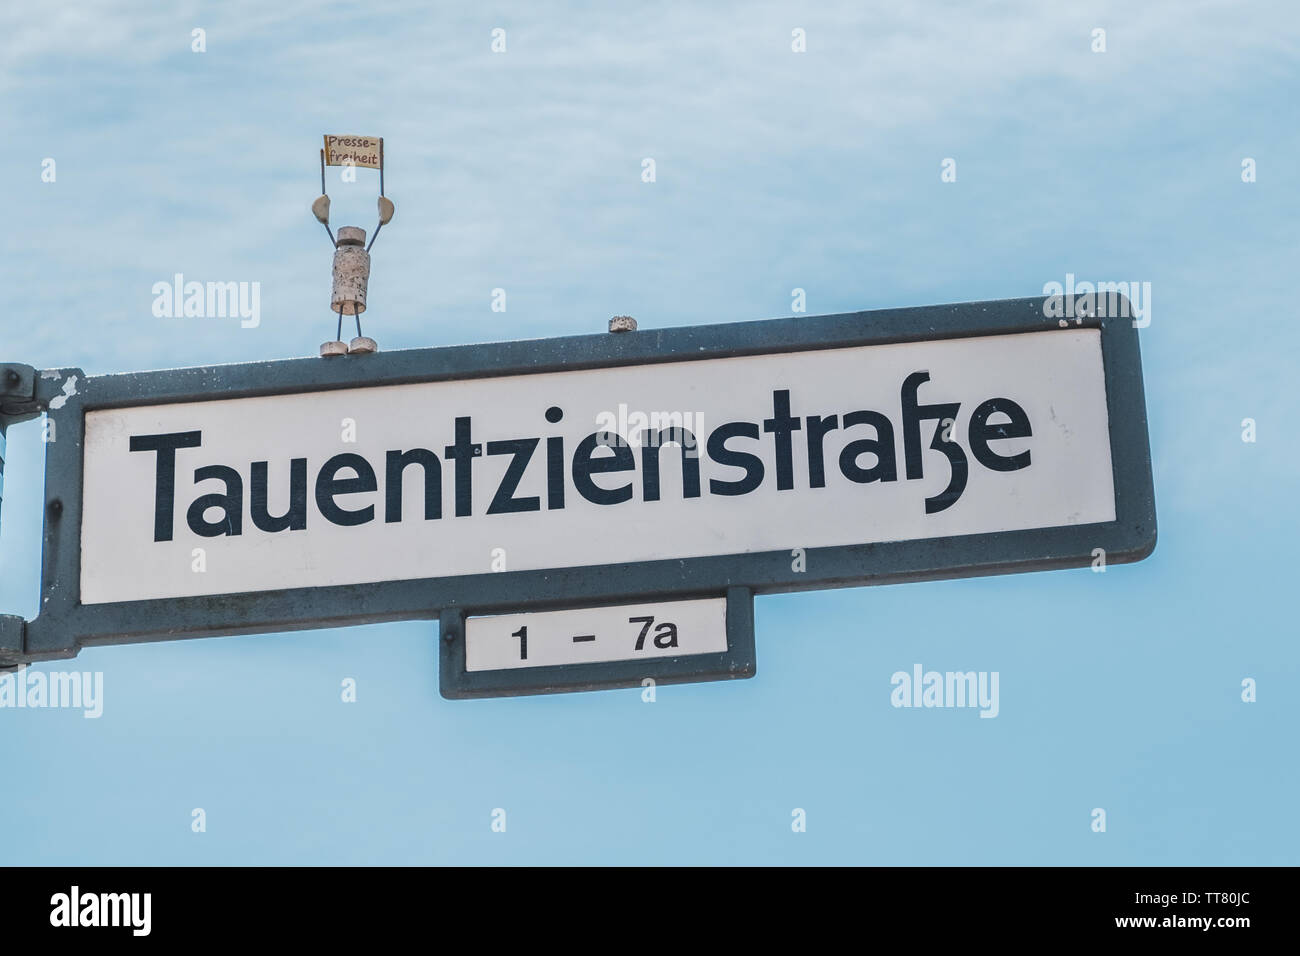 Berlin, Germany - june 2019: Street sign of the Tauentzienstrasse, with miniature model protesting for freeedom of the press (german: Pressefreiheit) - Stock Image